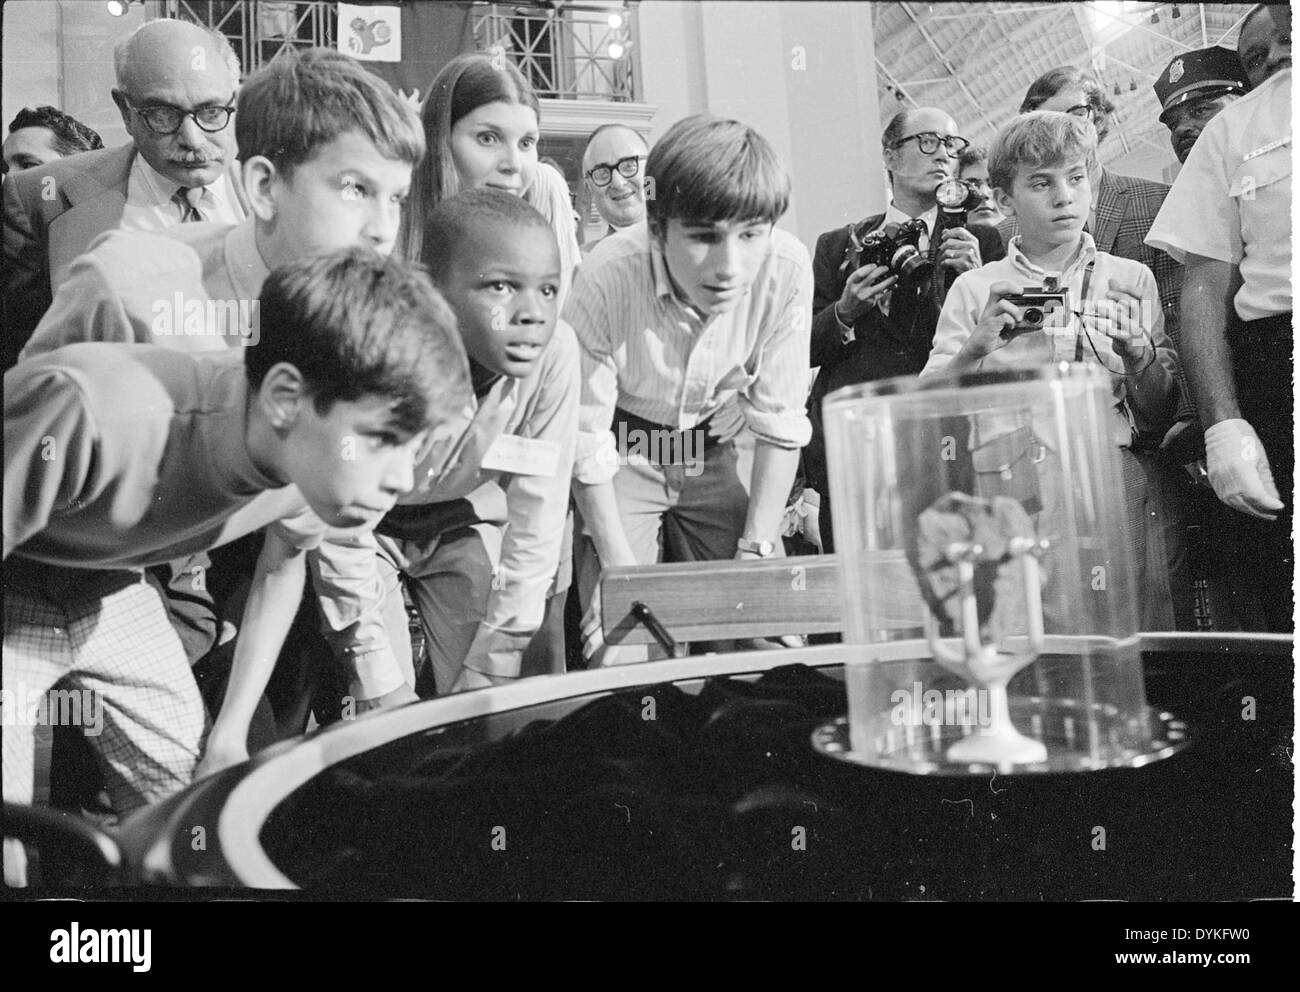 Lunar Sample Exhibit, Arts & Industries Building, 1970 - Stock Image